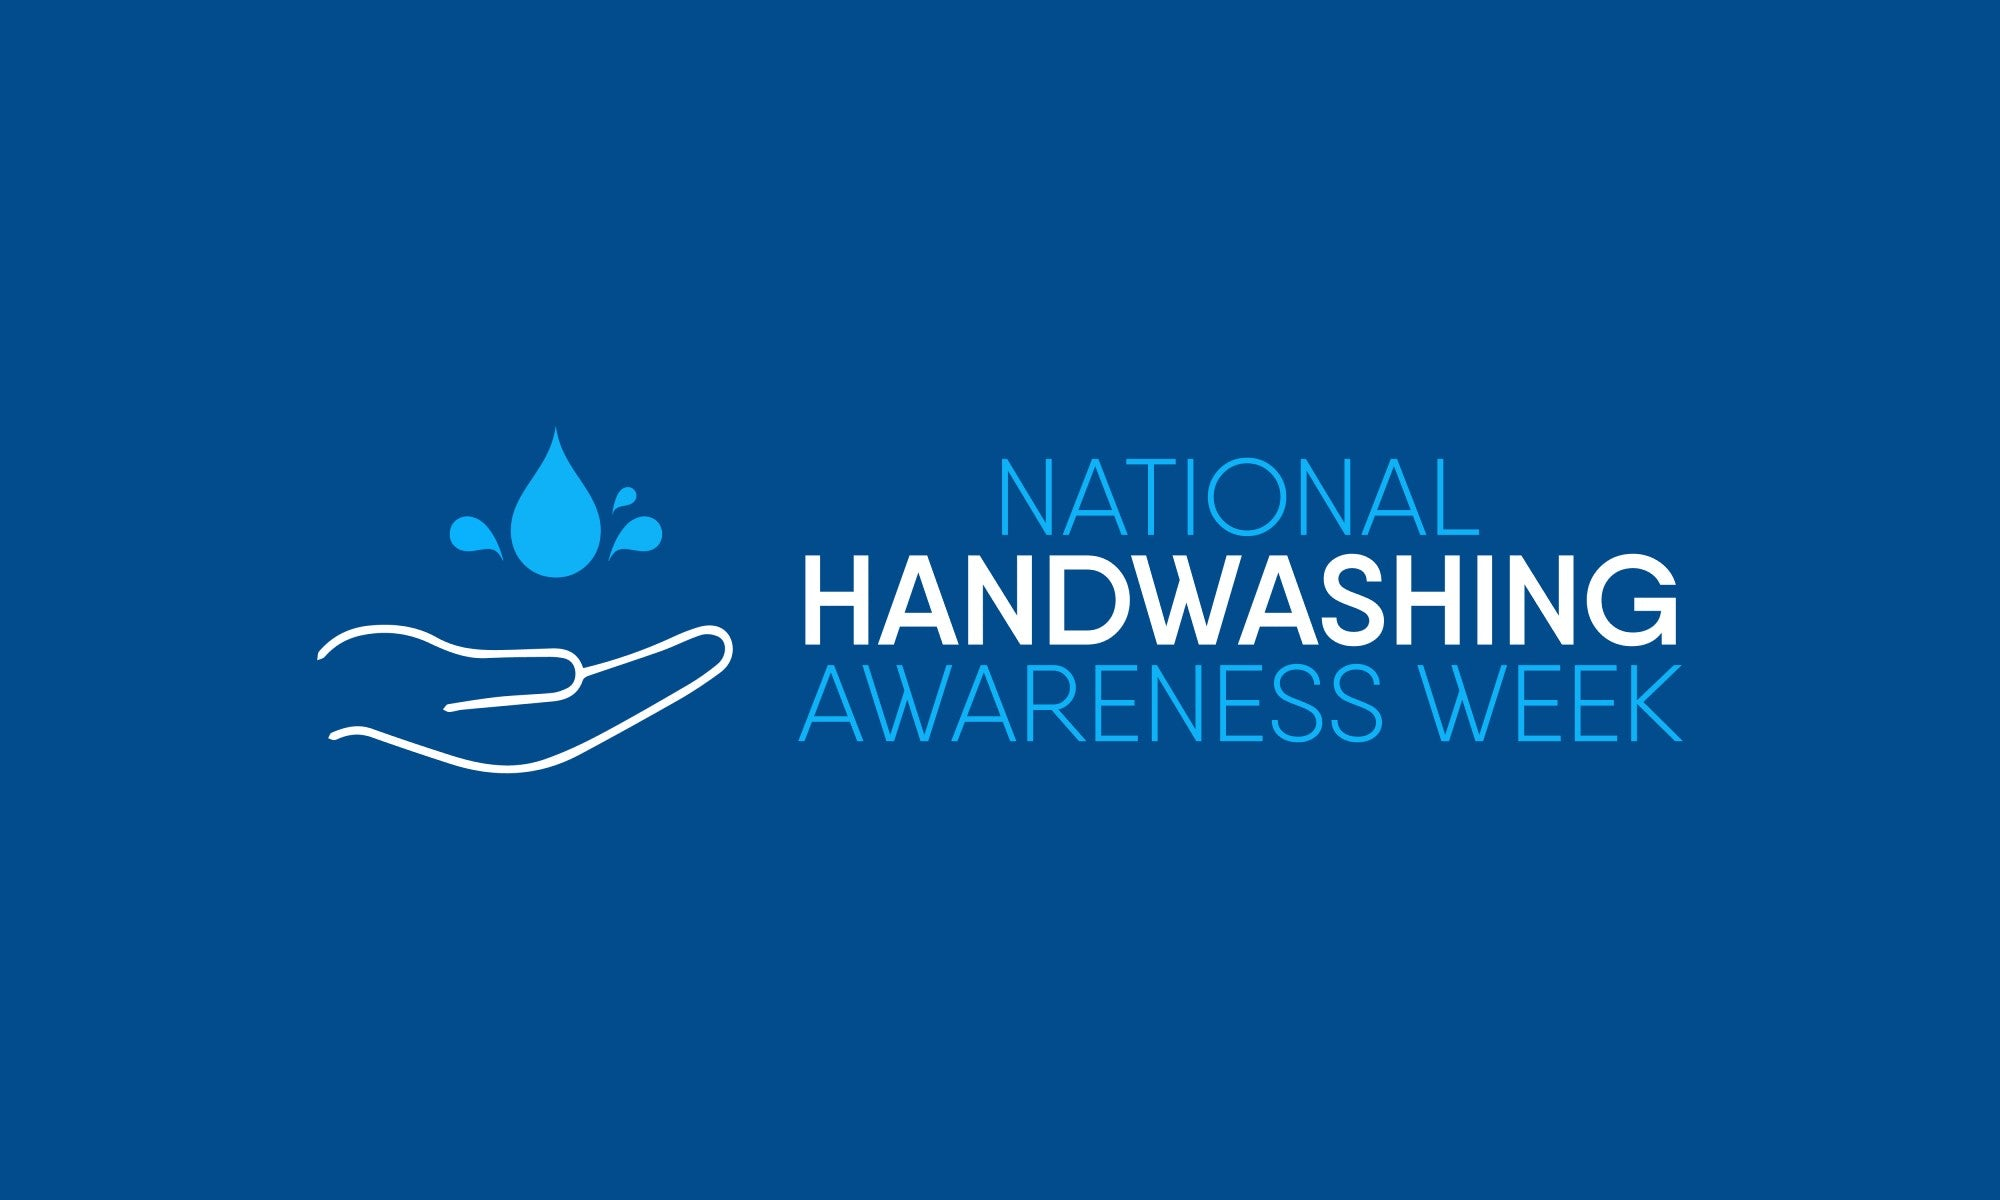 National Handwashing Awareness Week